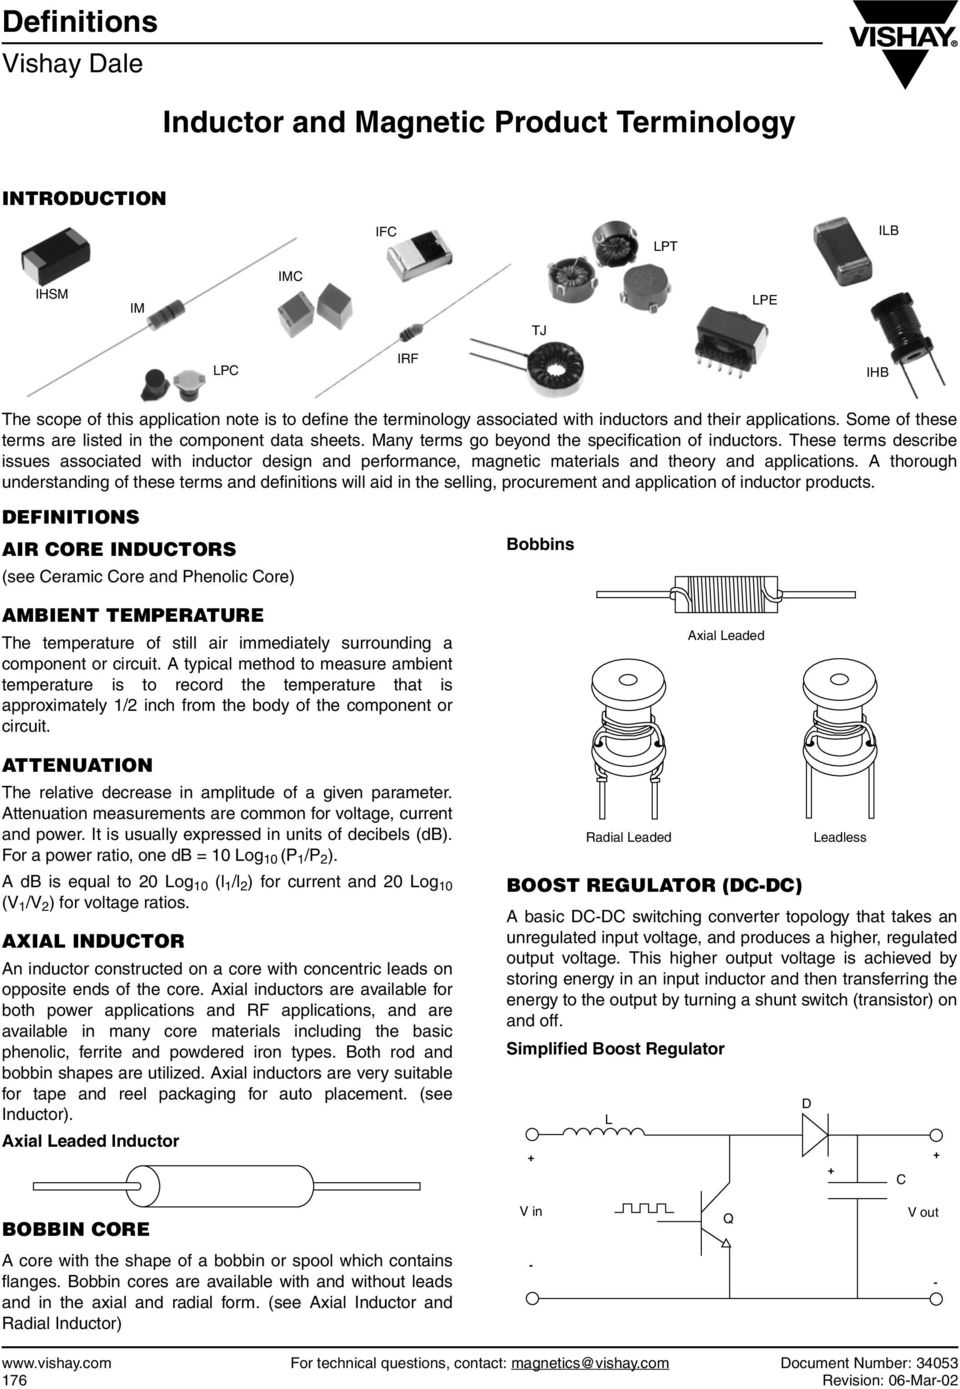 These terms describe issues associated with inductor design and performance, magnetic materials and theory and applications.